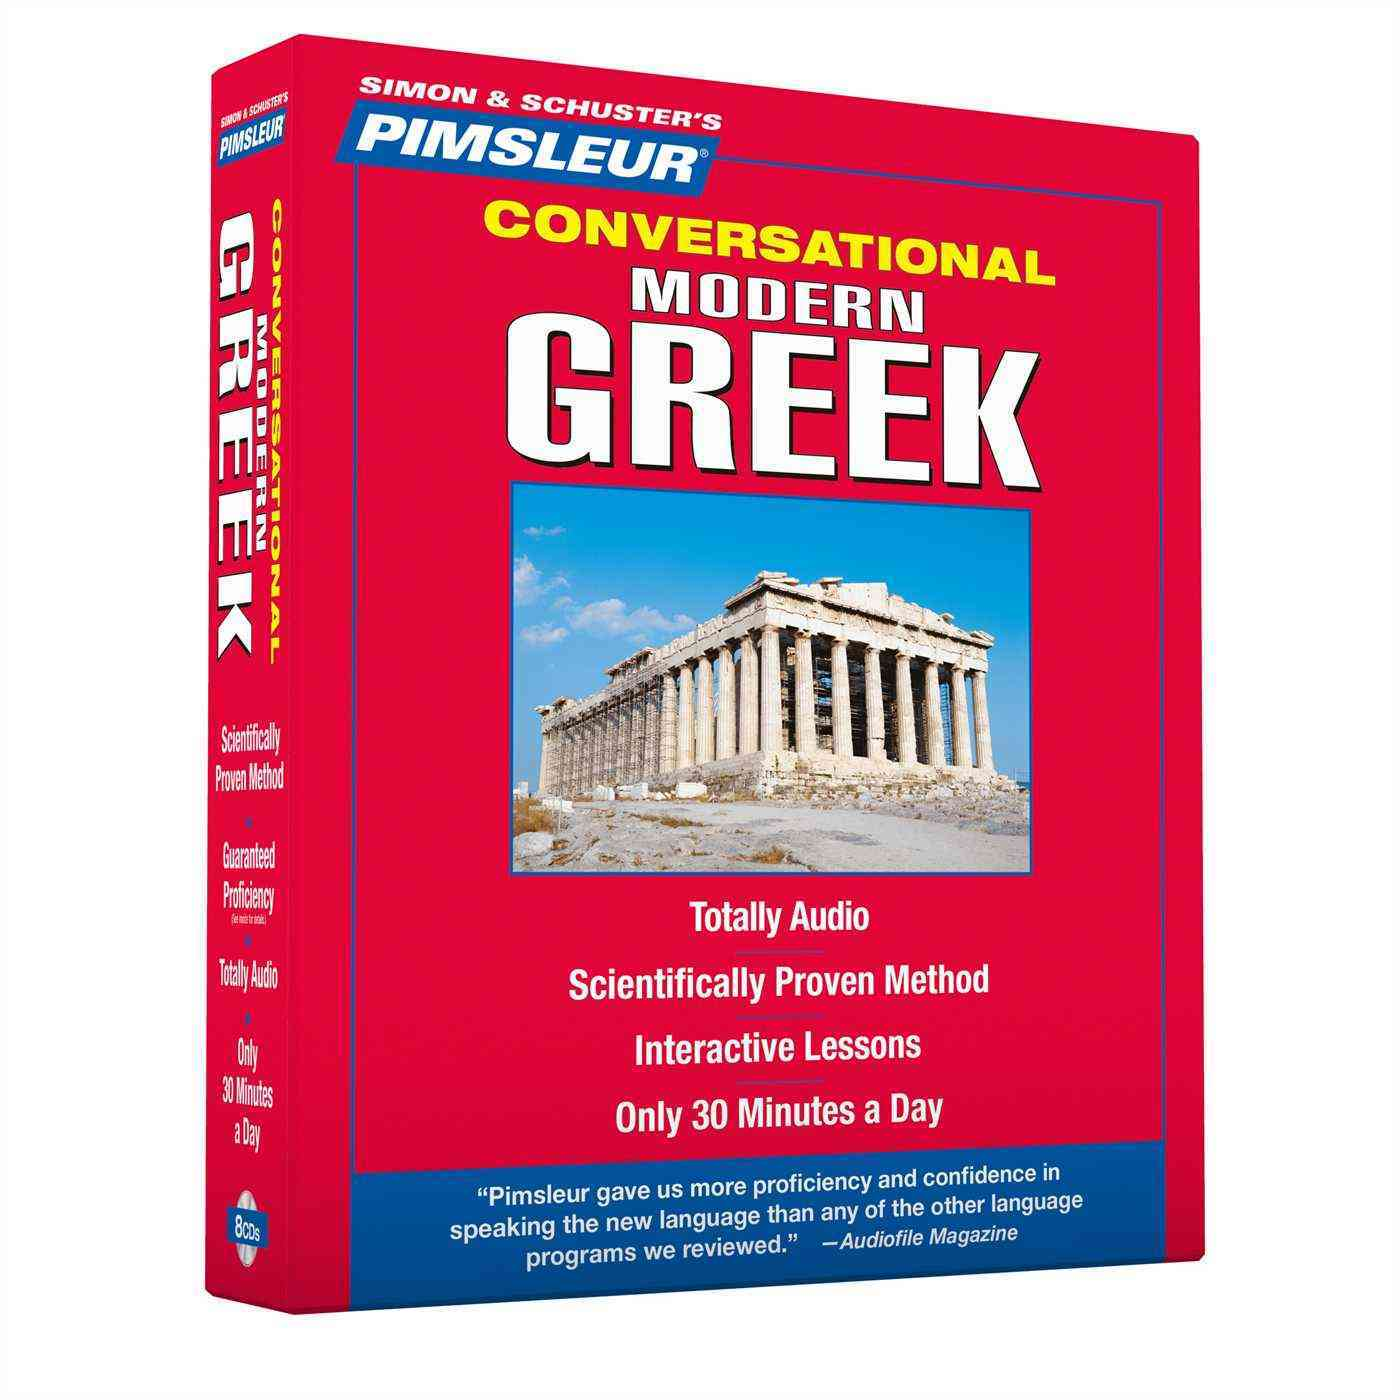 [CD] Pimsleur Conversational Modern Greek